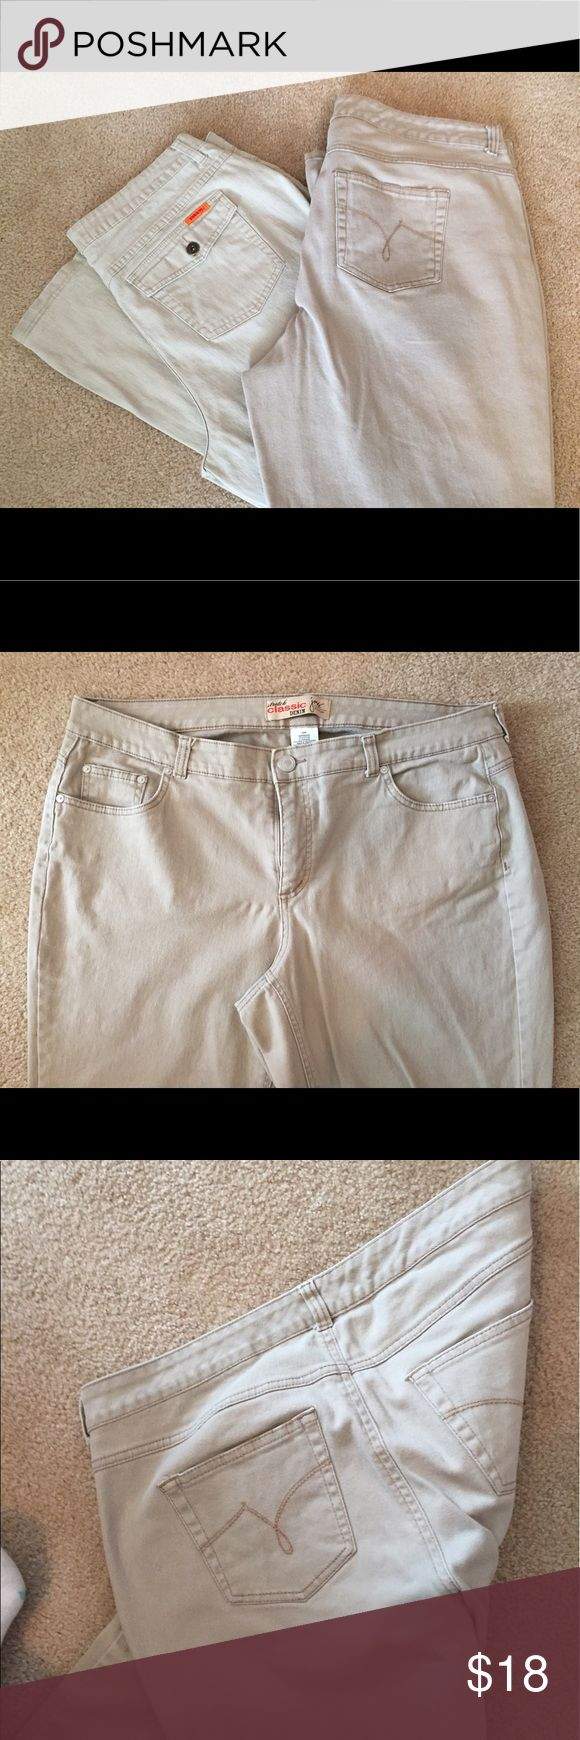 Kaki Jean Pair I am selling two pairs of kaki jeans in this offer.  One pair is a size 20 and the other is a size 18. Both pairs are medium length. Take advantage of my pairs, they will save you a lot of dough.  You can bundle for even more savings! Jeans Boot Cut